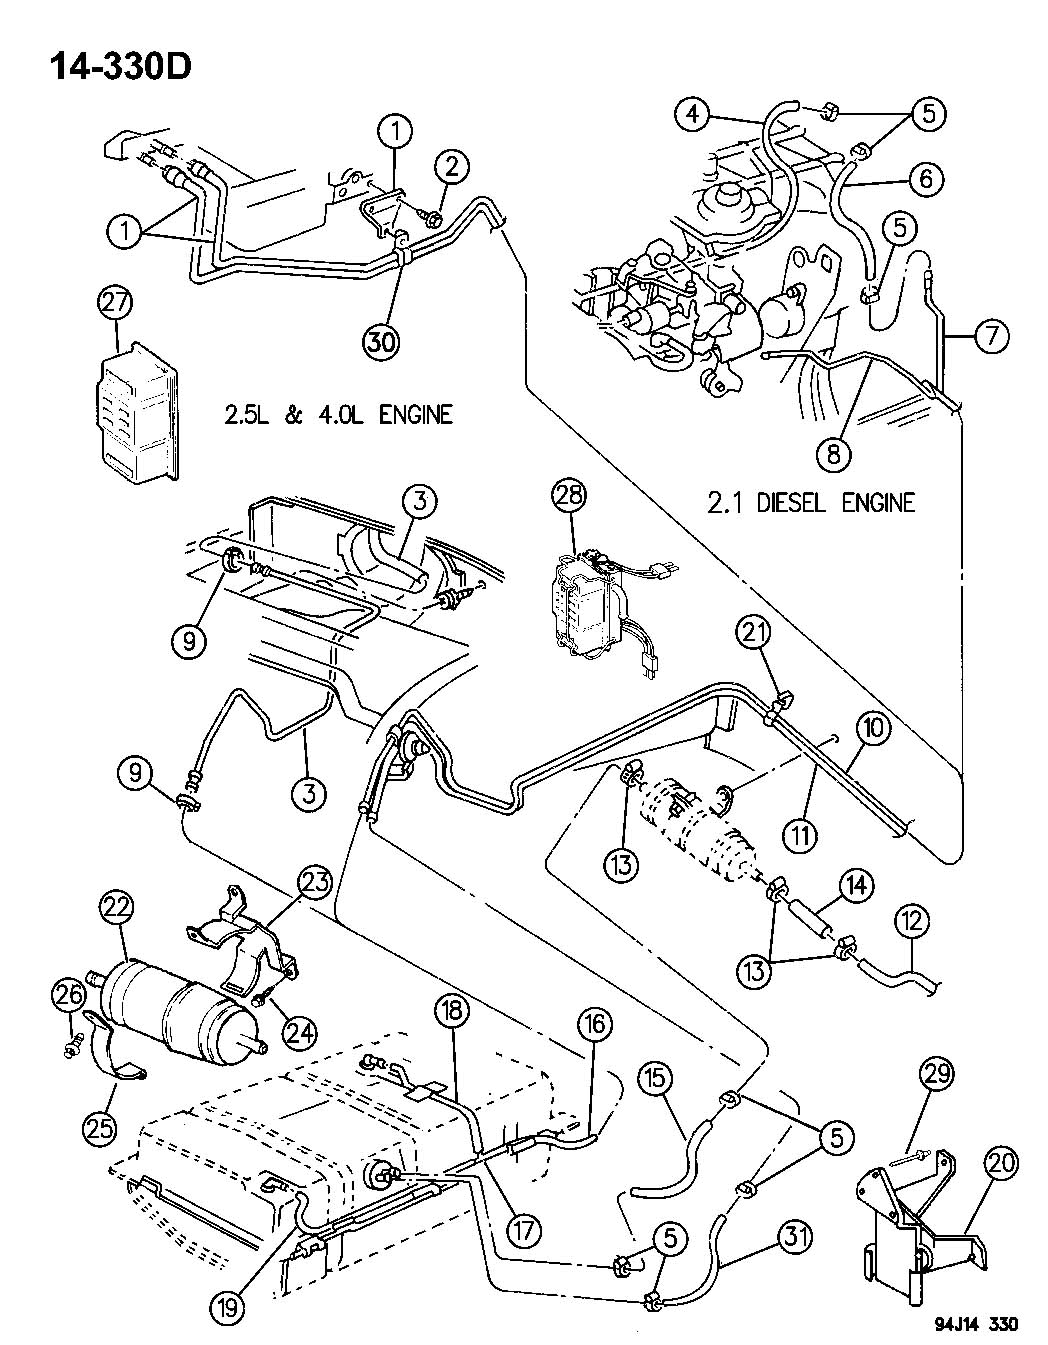 1995 jeep cherokee fuel lines pictures to pin on pinterest